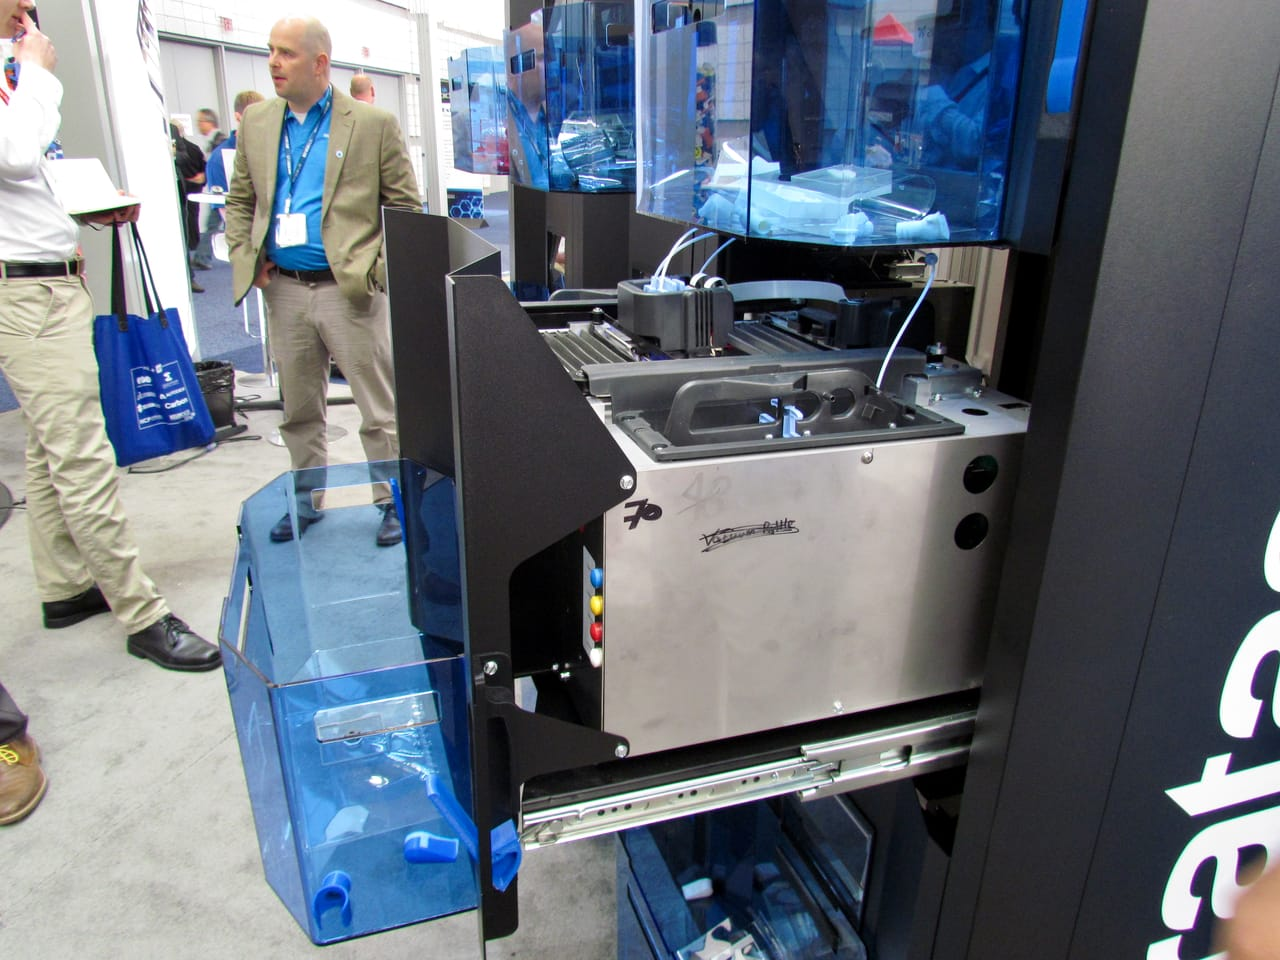 An open cell in Stratasys' Continuous Build Demonstrator with blue bin to catch completed 3D prints